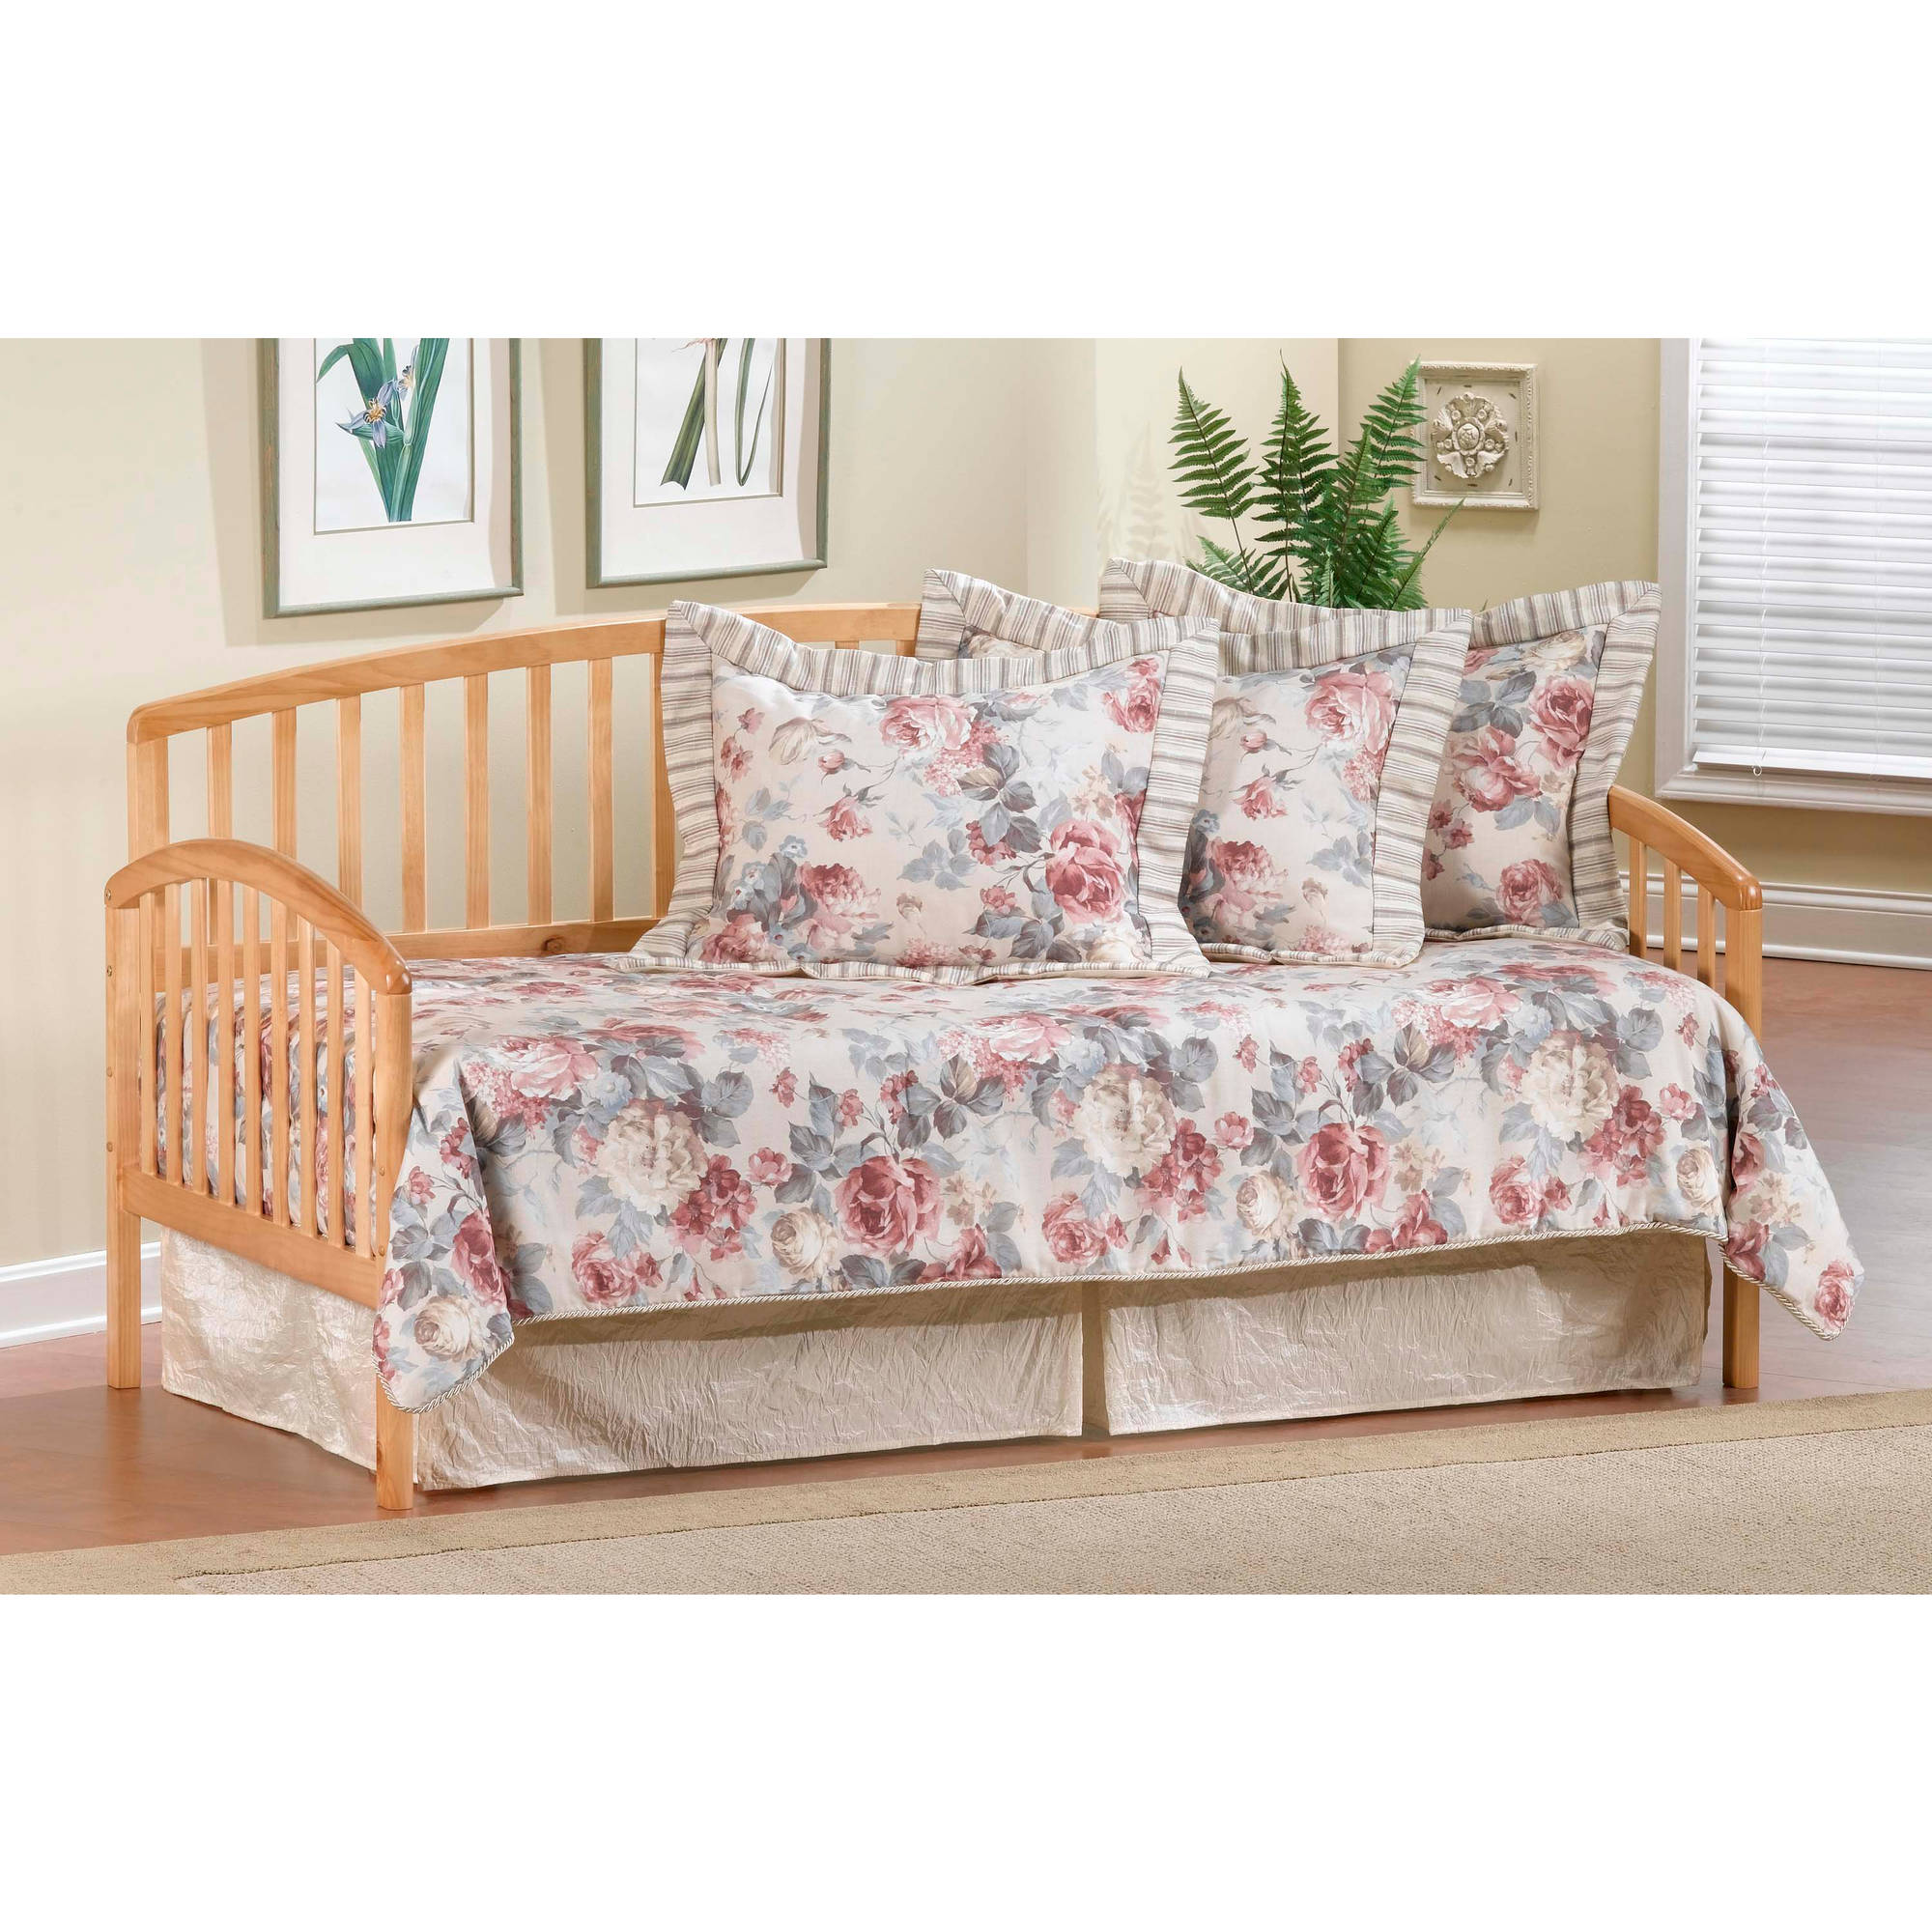 Hillsdale Furniture Carolina Day Bed, Country Pine by Hillsdale Furniture